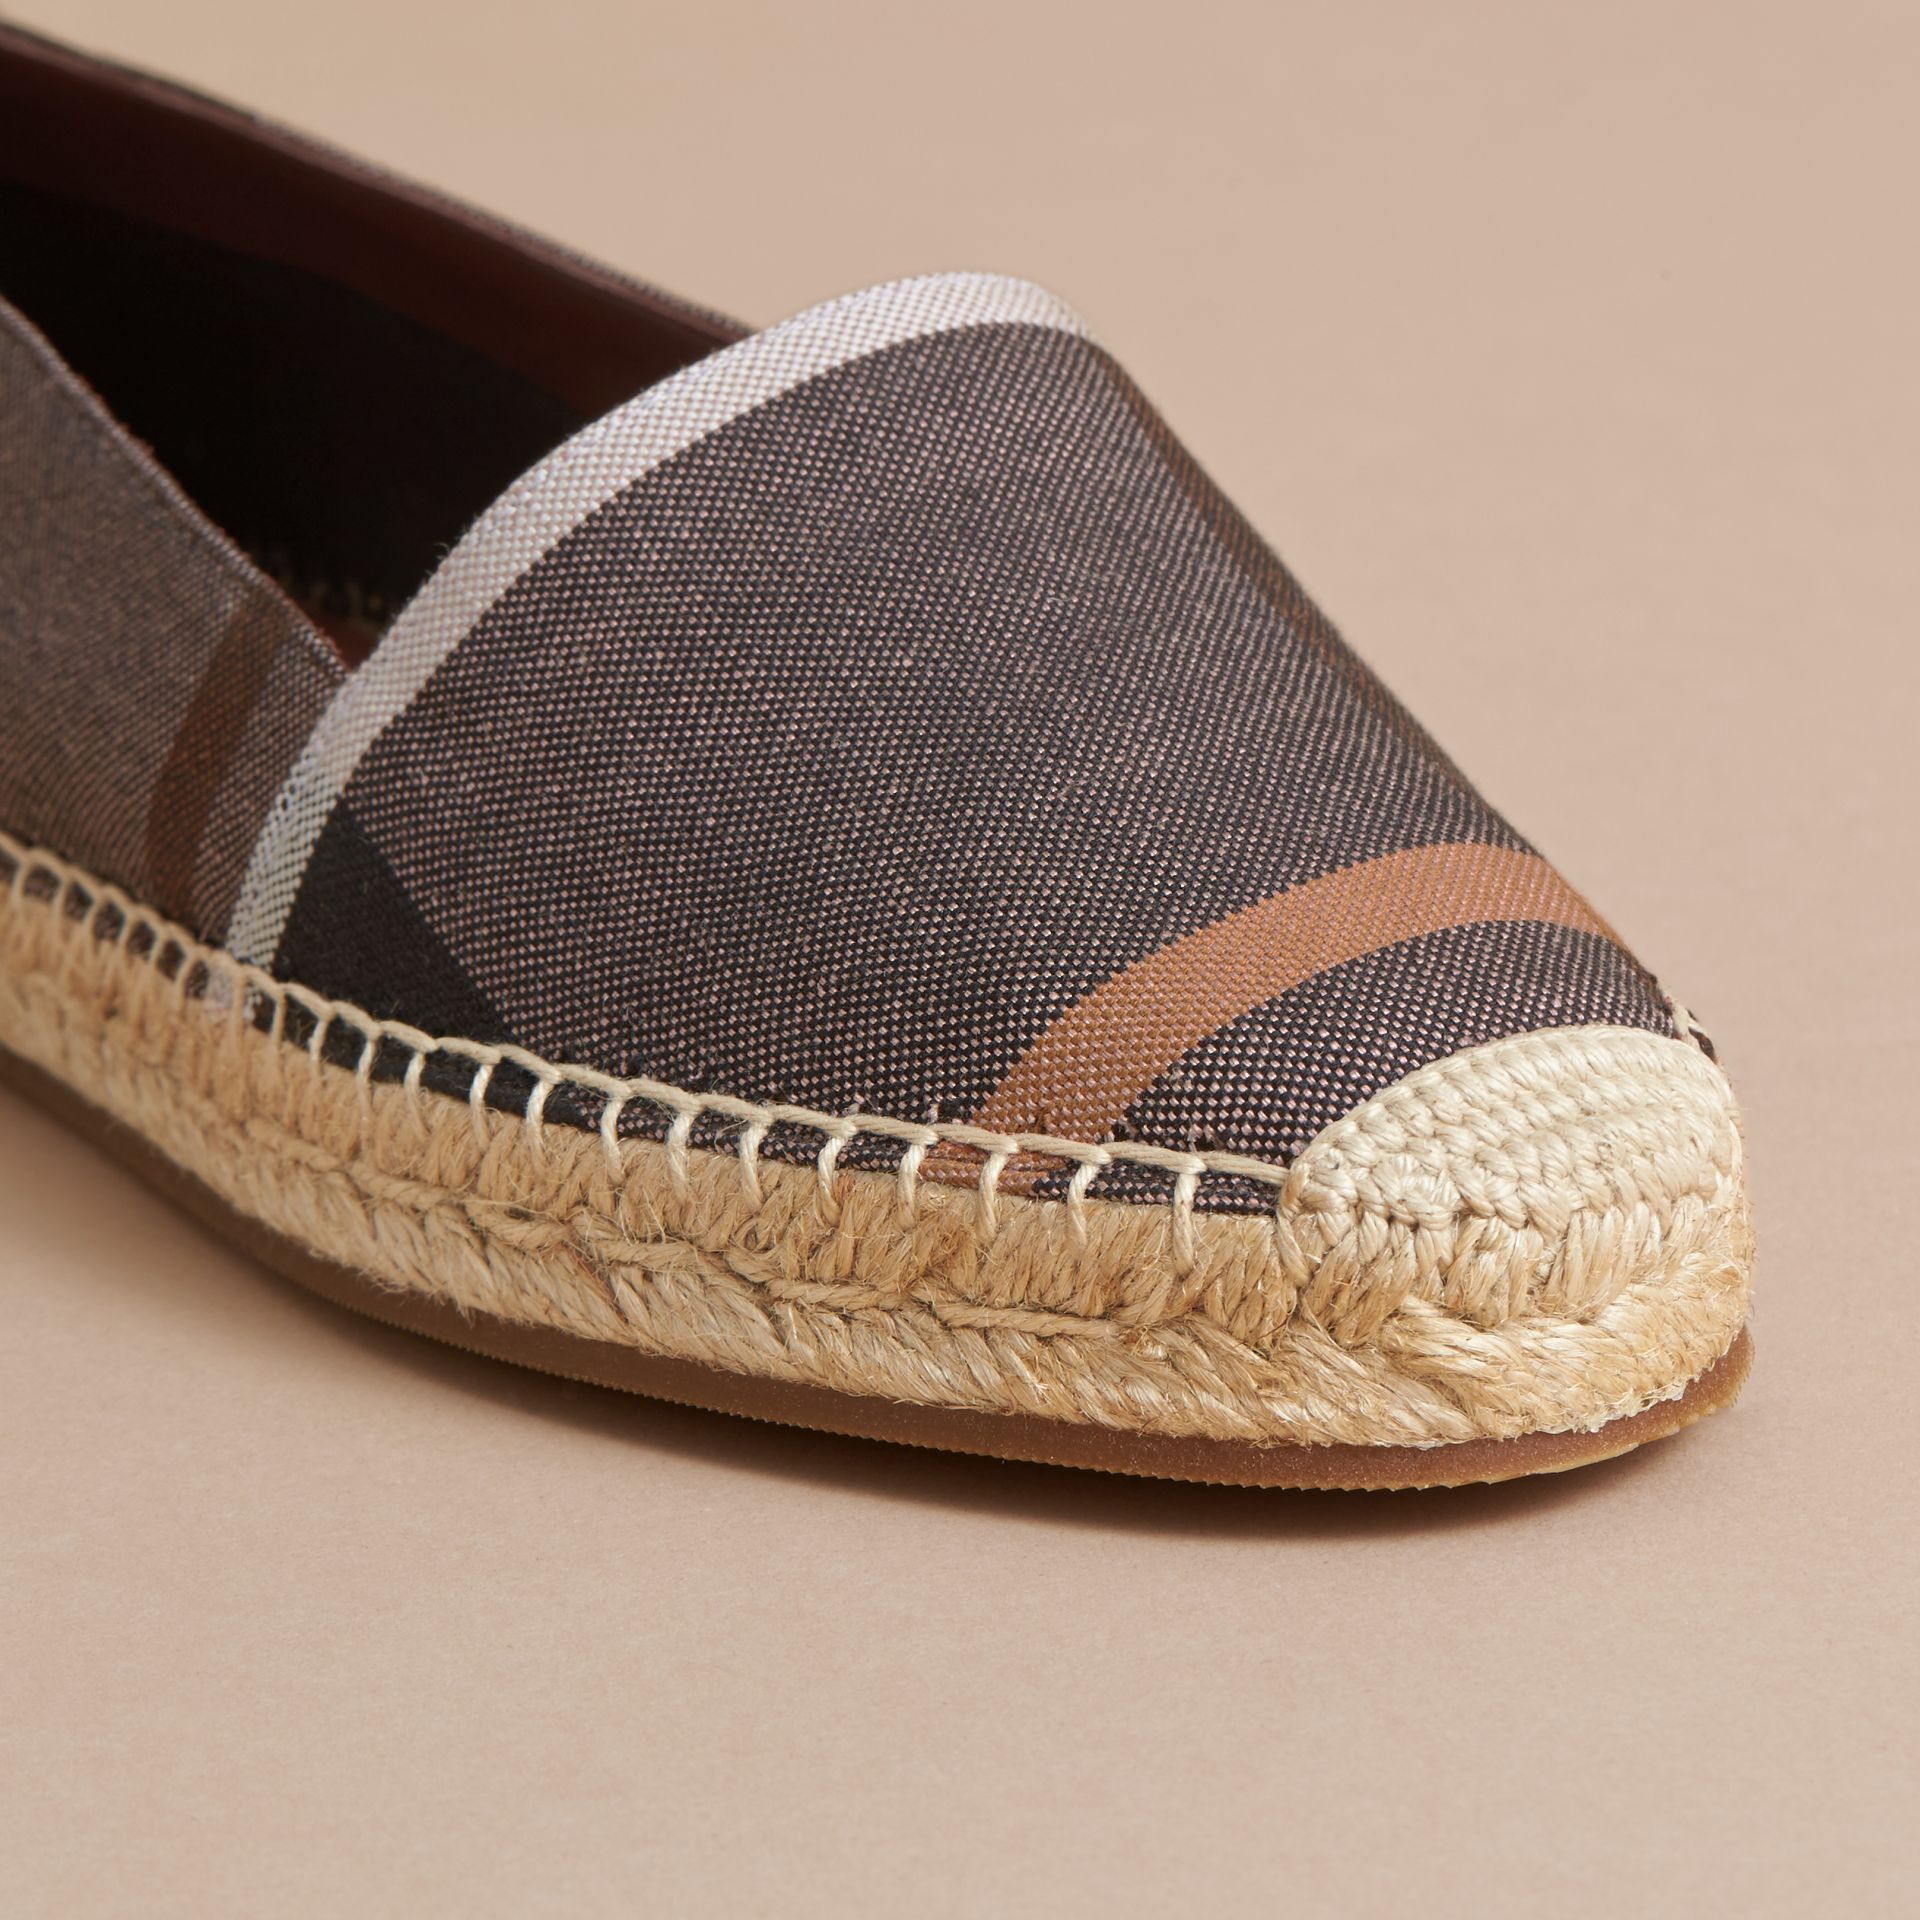 Check Linen Cotton Espadrilles in Cerise Purple - Women | Burberry - gallery image 2